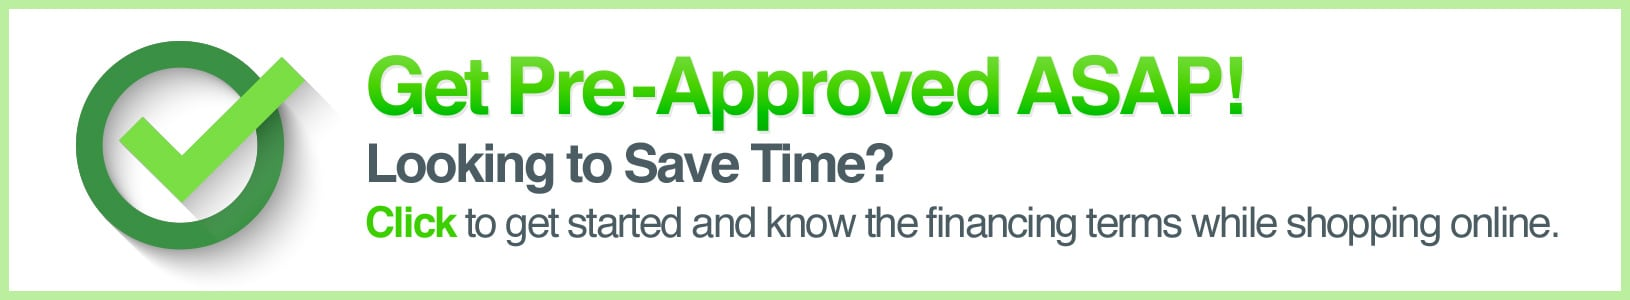 Get Pre-Approved at Toyota of Glendale serving Los Angeles